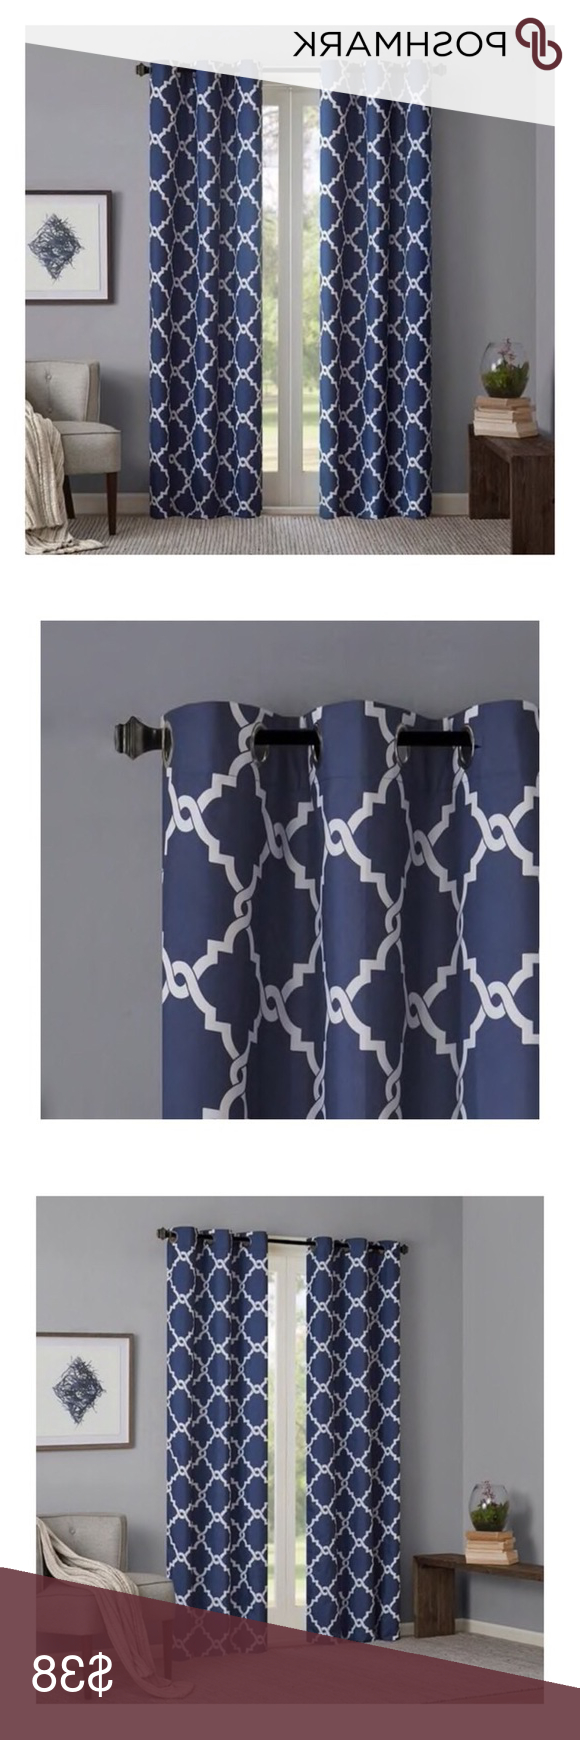 Widely Used Nwot Indigo Geometric Grommet Top Curtain Panels Nwot (View 11 of 20)